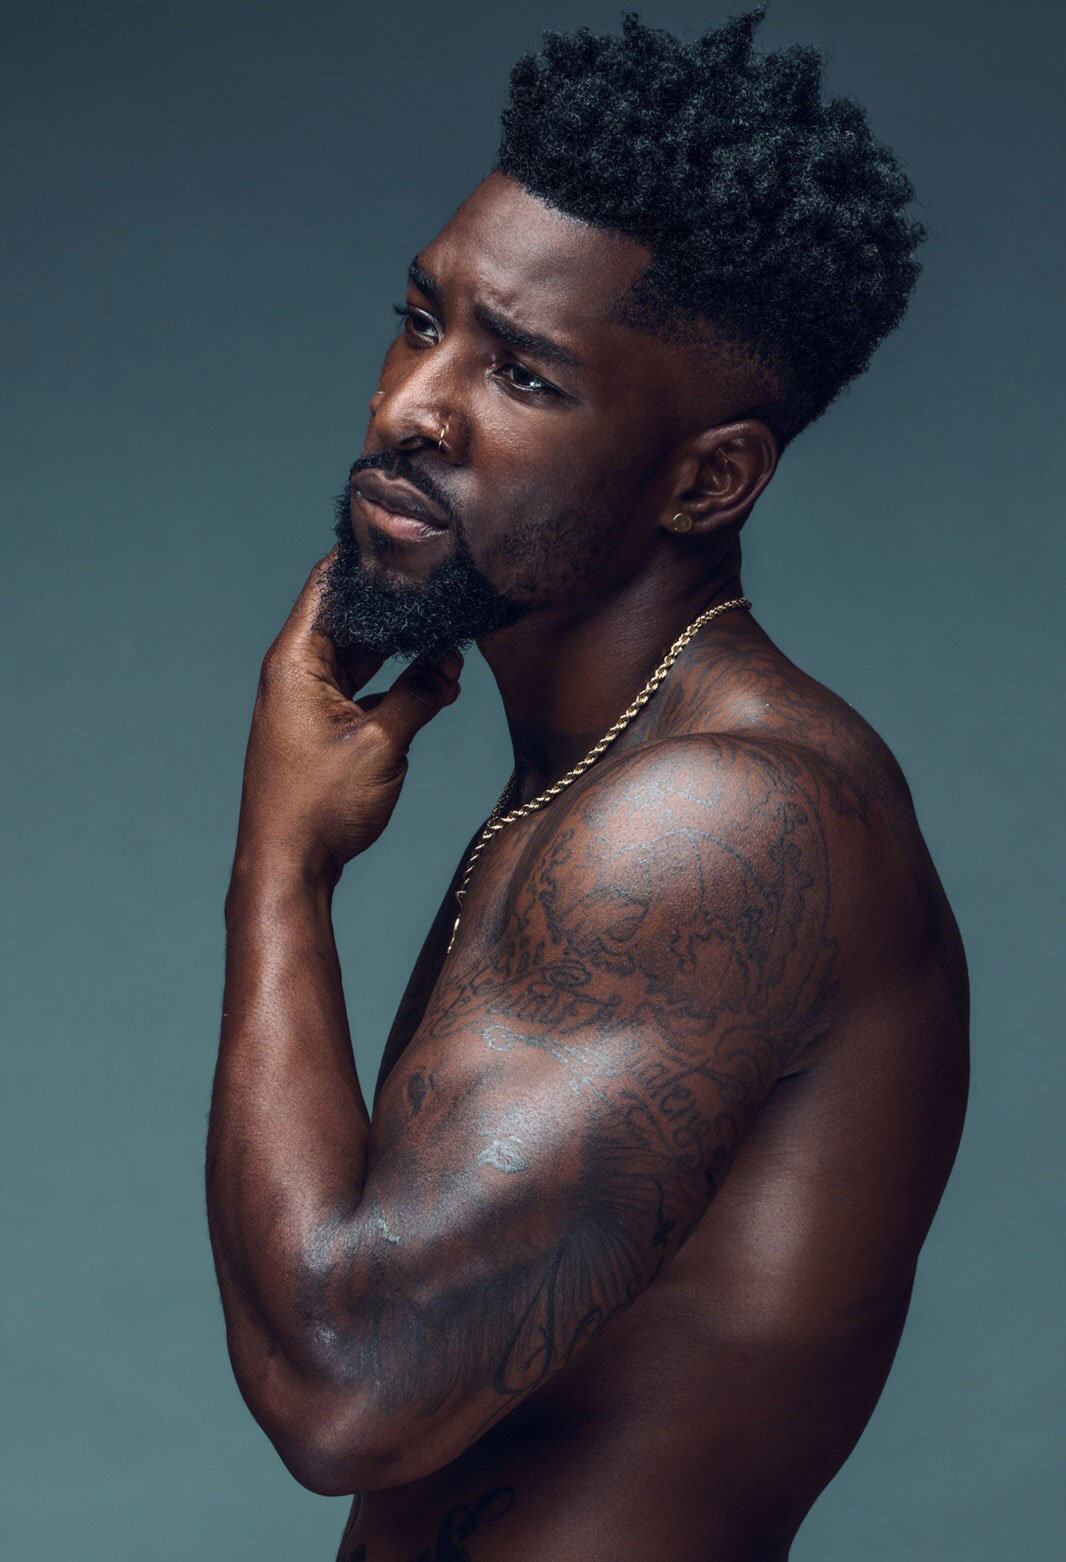 Black Men Beard Styles - Tight Beard